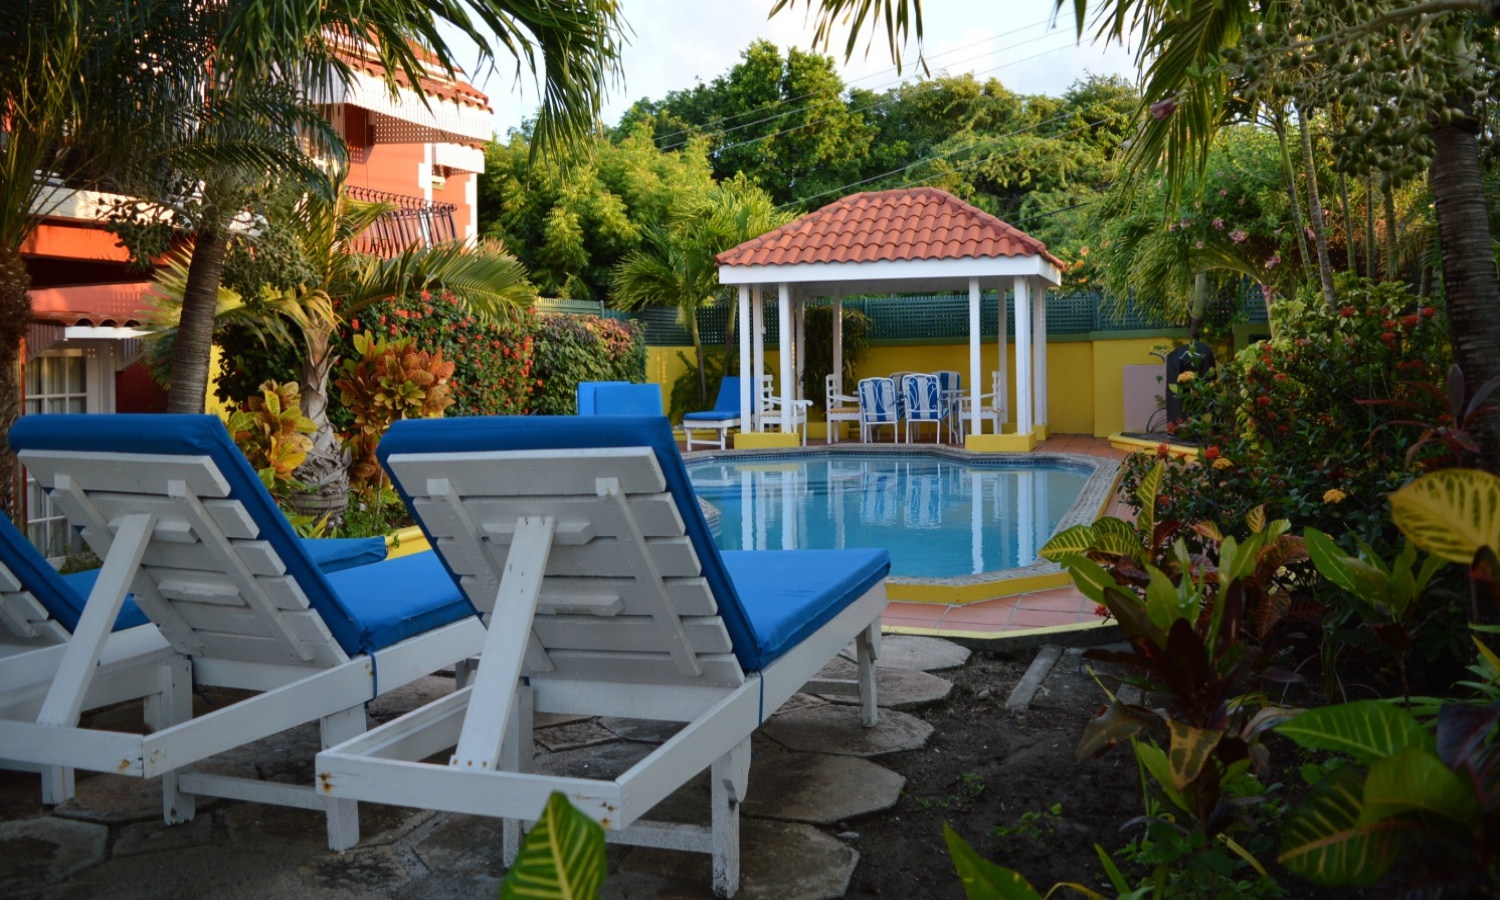 Pool chairs gazebo 548KB